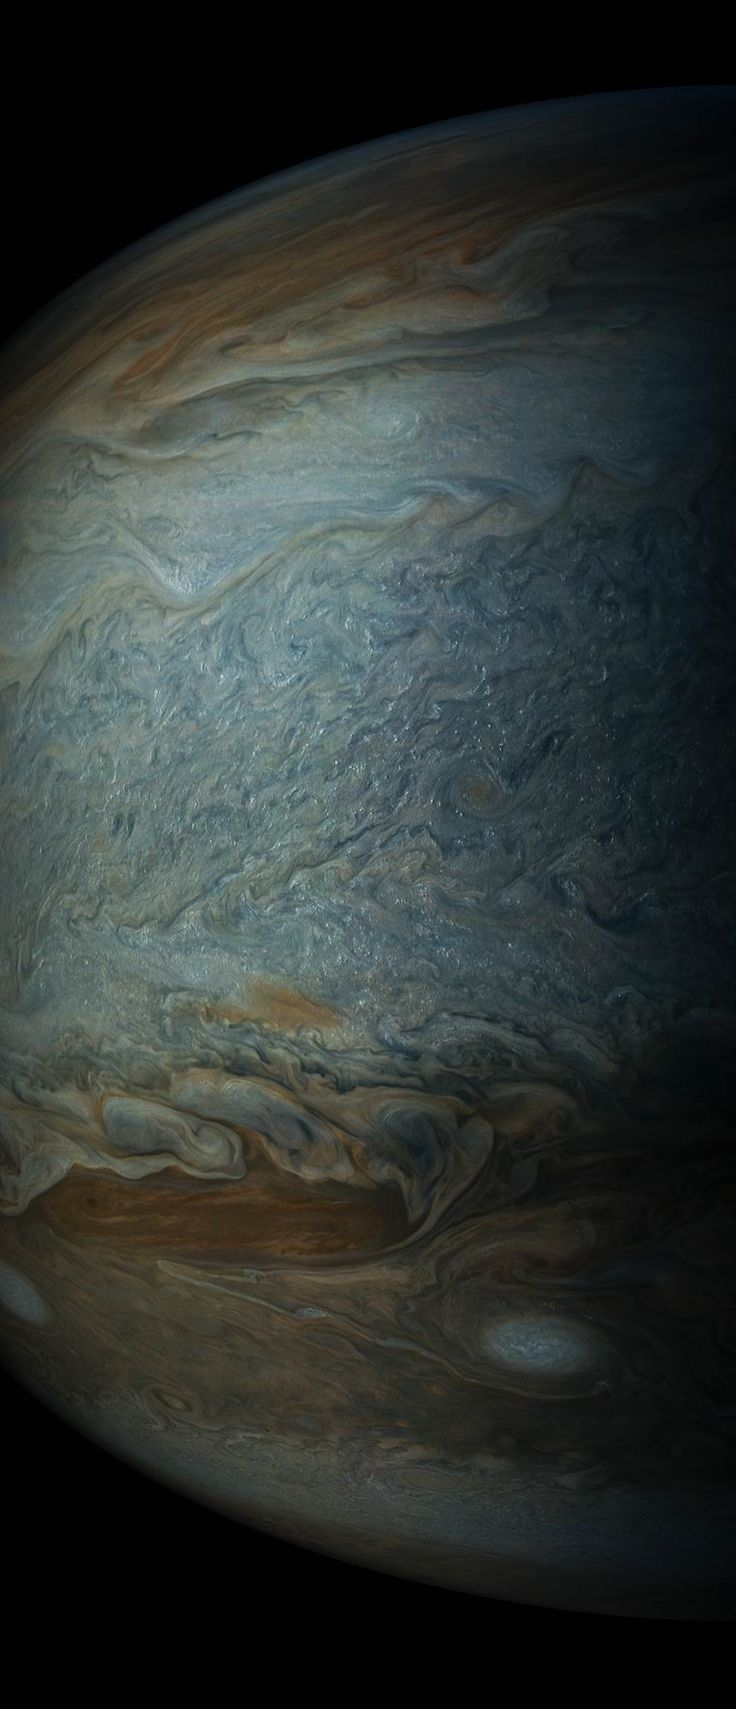 Jupiter's Clouds: May 19, 2017 | NASA Juno Mission  More information on the Juno mission is available at: www.nasa.gov/juno http://missionjuno.org  Credits: NASA/SWRI/MSSS/Gerald Eichstädt/Seán Doran Release Date: May 25, 2017  #NASA #Astronomy #Science #Space #Jupiter #Planet #Atmosphere #Clouds #Juno #Spacecraft #JunoCam #Exploration #SolarSystem #Technology #Engineering #JPL  https://plus.google.com/113507009175485747967/posts/GTcJJN2Riyo